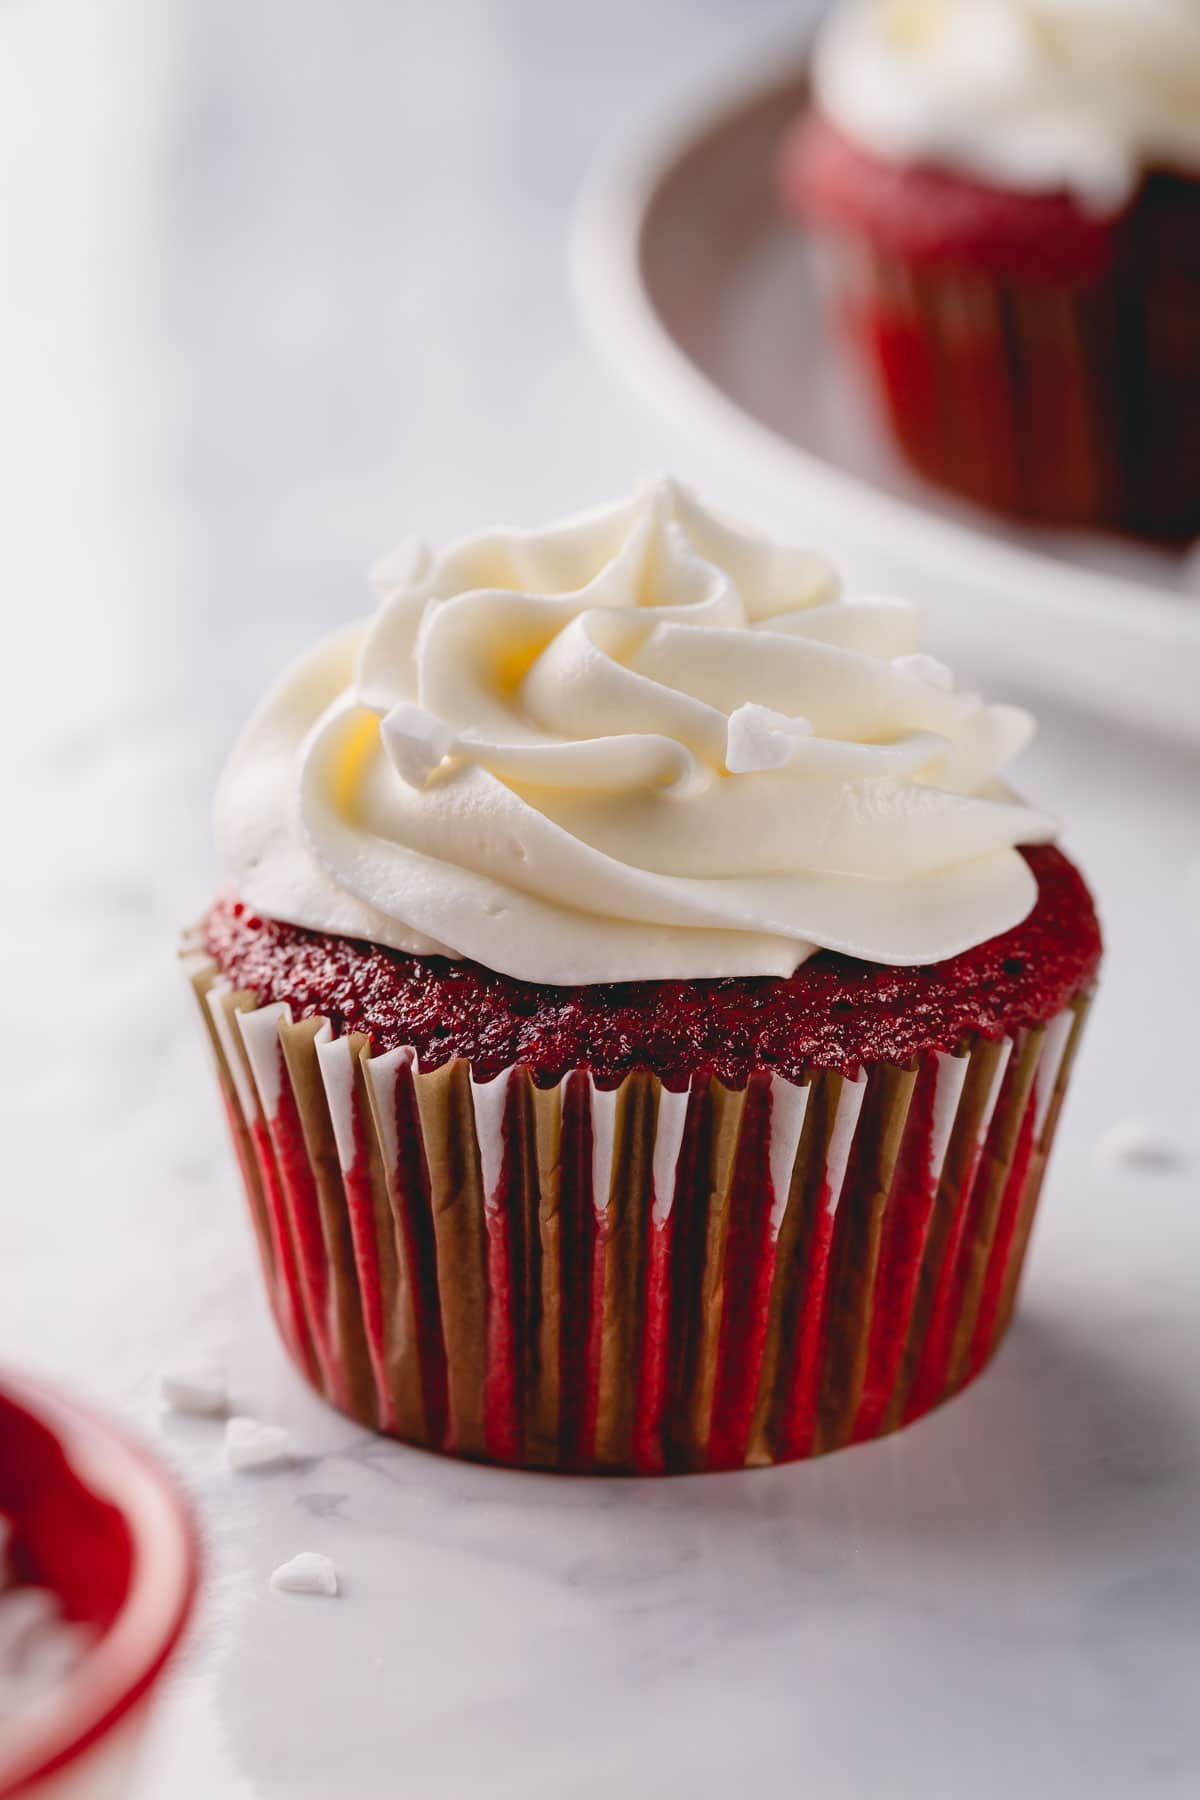 A red velvet cupcake with tall cream cheese frosting.